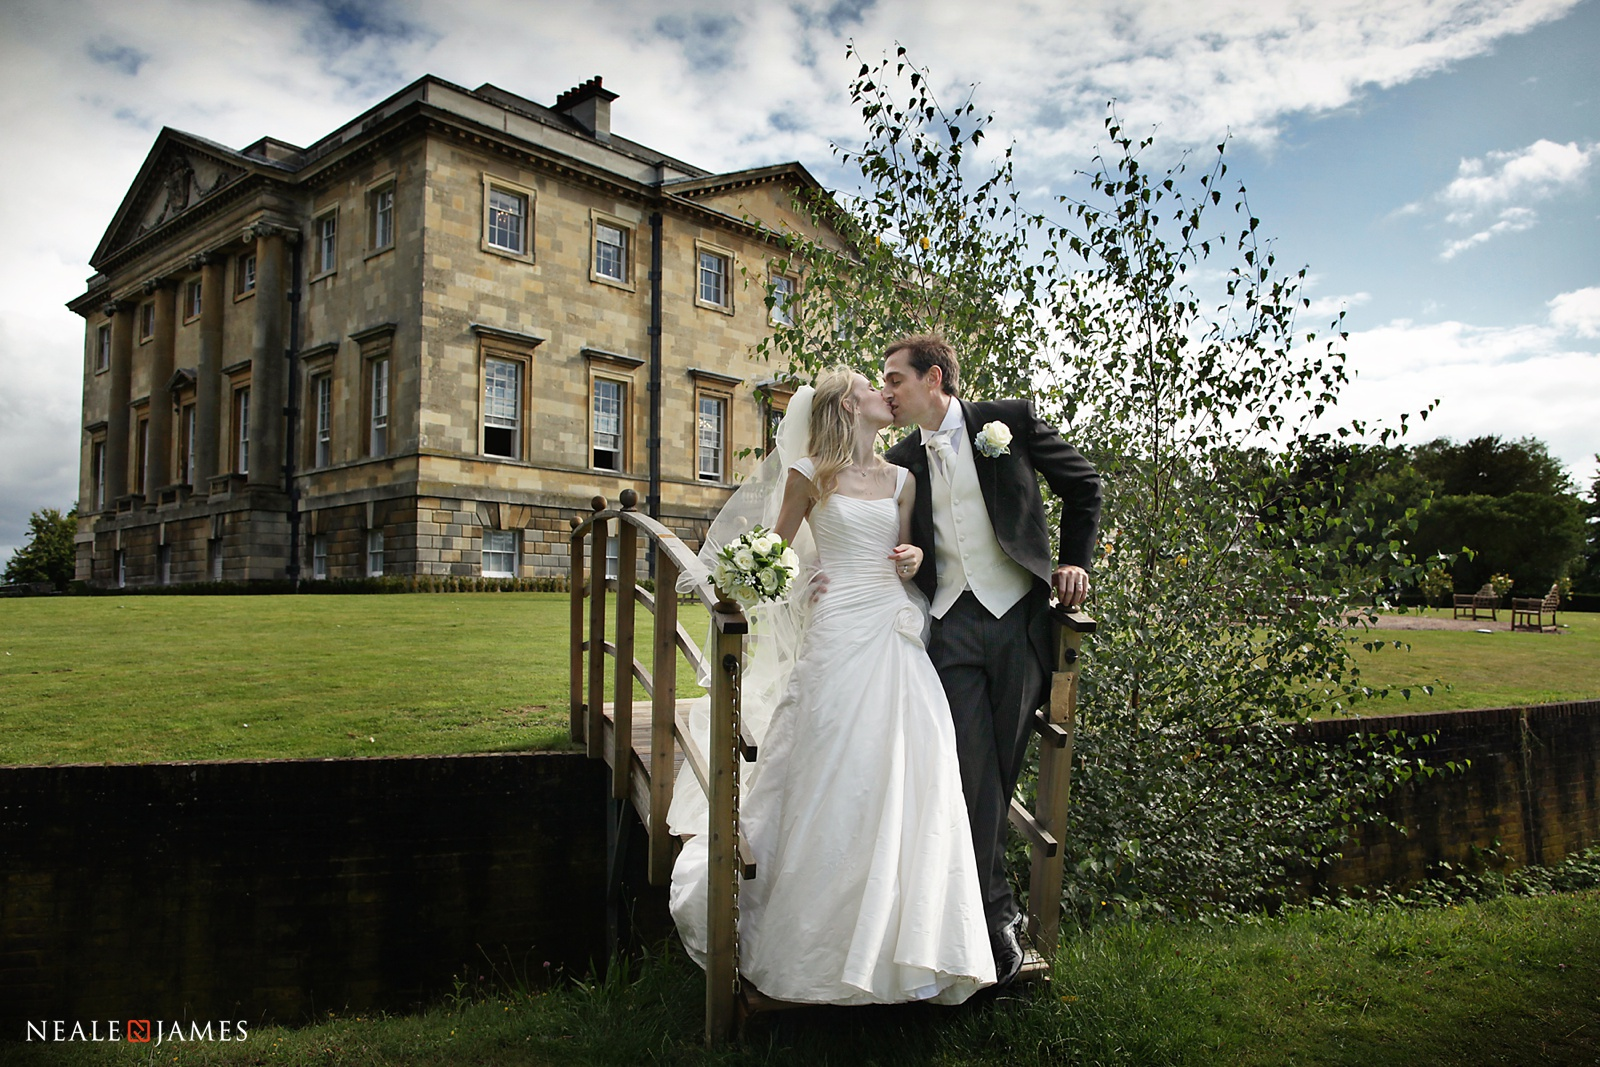 A couple in front of Botleys Mansion wedding venue